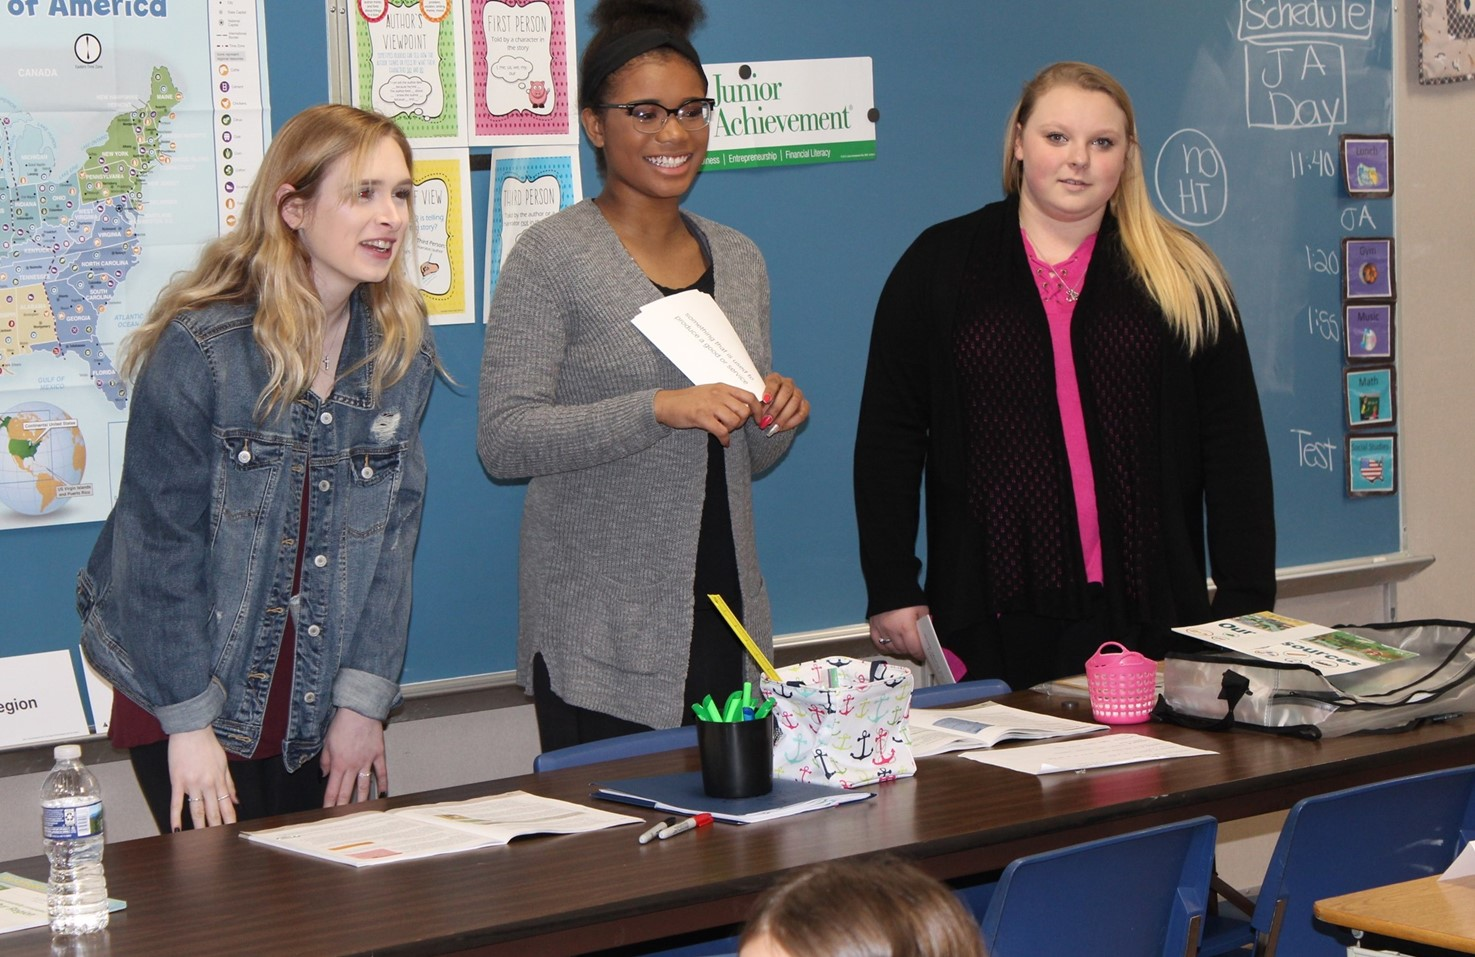 BPHS Child Development Students Teach Lessons At Franklin On JA Day